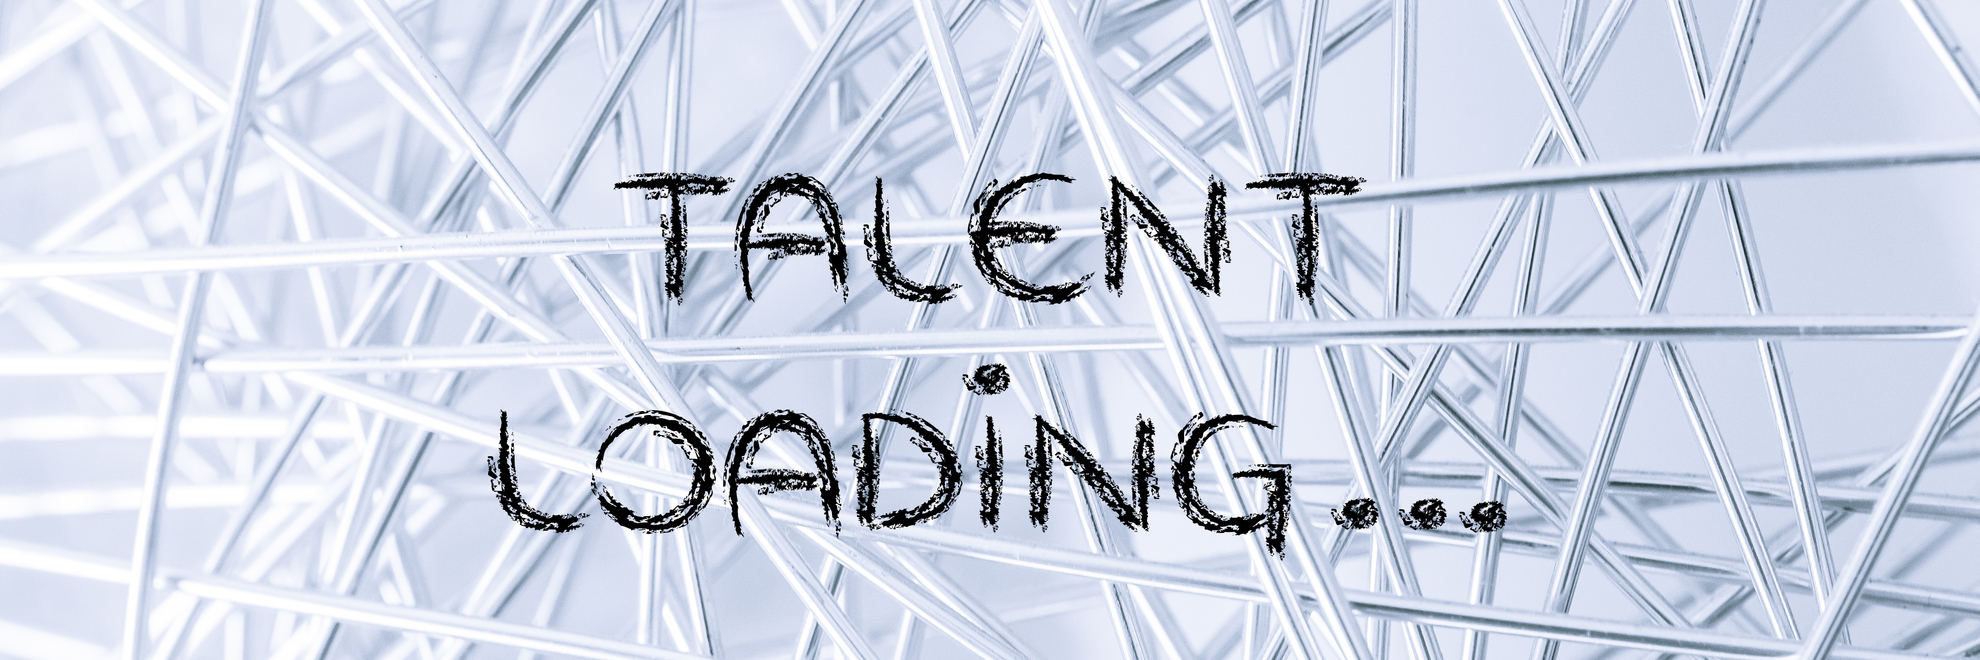 Accelerating Digital Delivery in the War for Talent